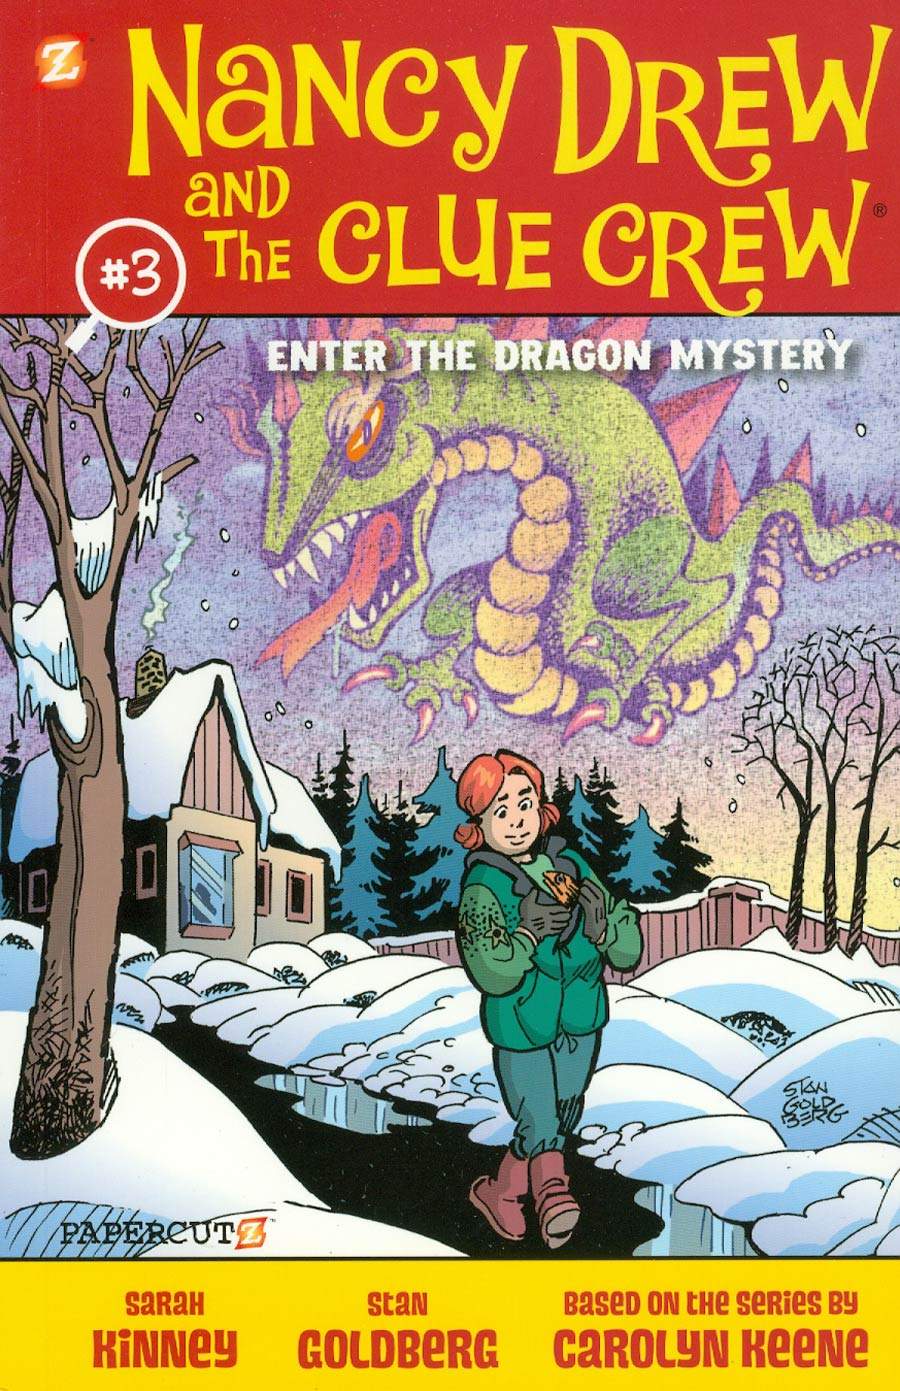 Nancy Drew And The Clue Crew Vol 3 Enter The Dragon Mystery TP